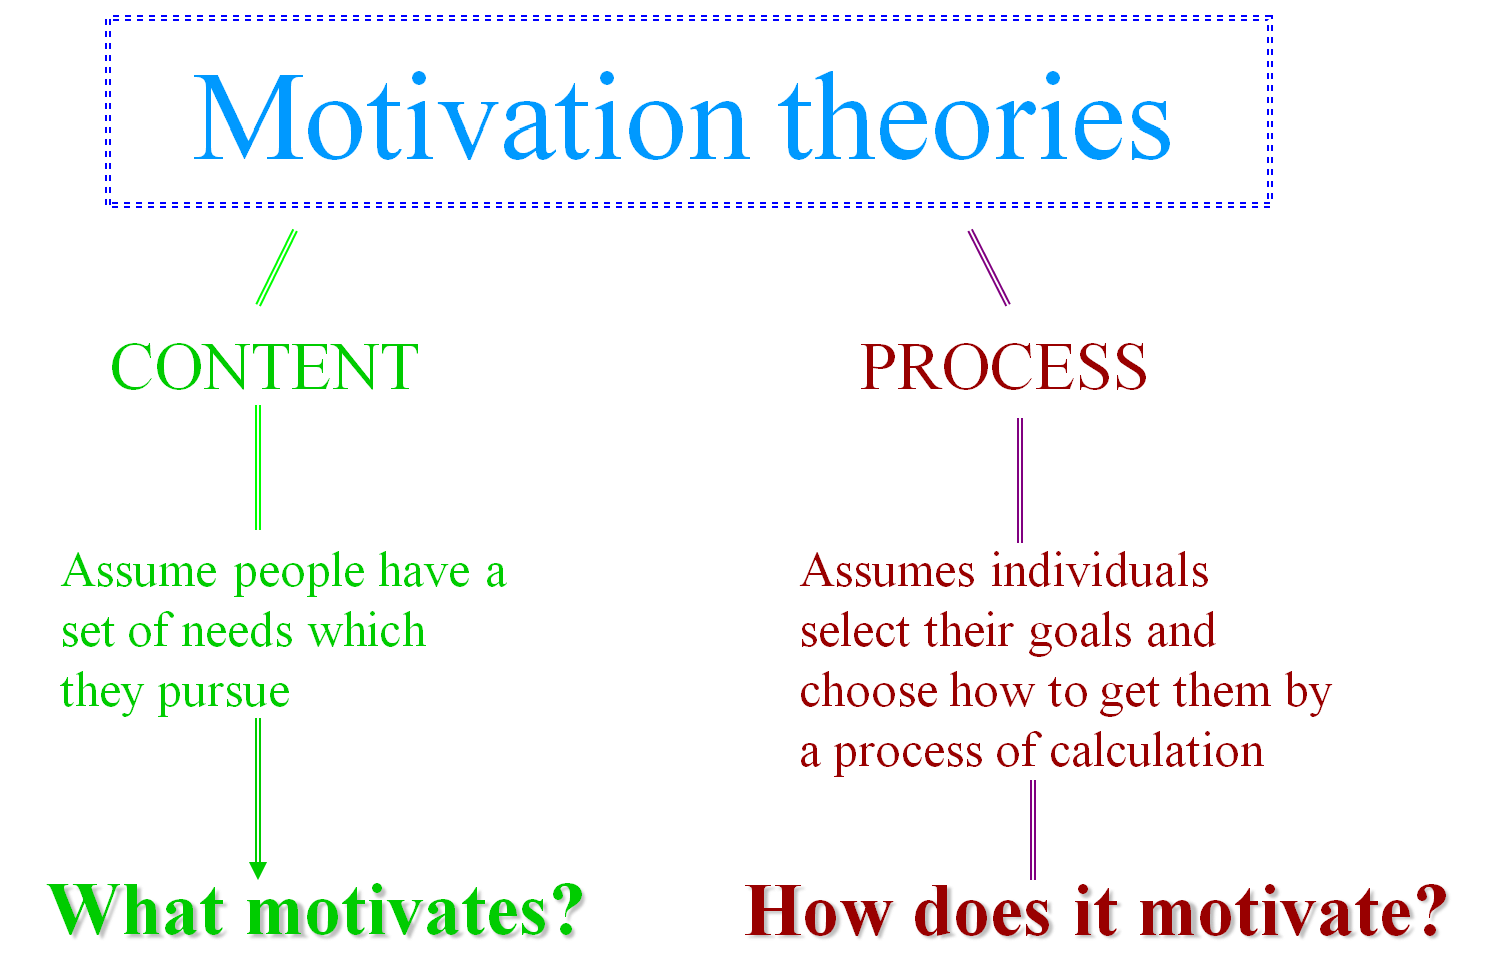 motivational theories applied in the workplace essay That is, motivational theories that look at what individual needs motivate and direct behaviour to respond to specific goals many early theories from the 1950's, include maslow's hierarchy of needs, mcgregor's theory x and theory y and herzberg's motivation-hygiene theory, established core concepts which have helped explain motivation especially in an organisational setting.